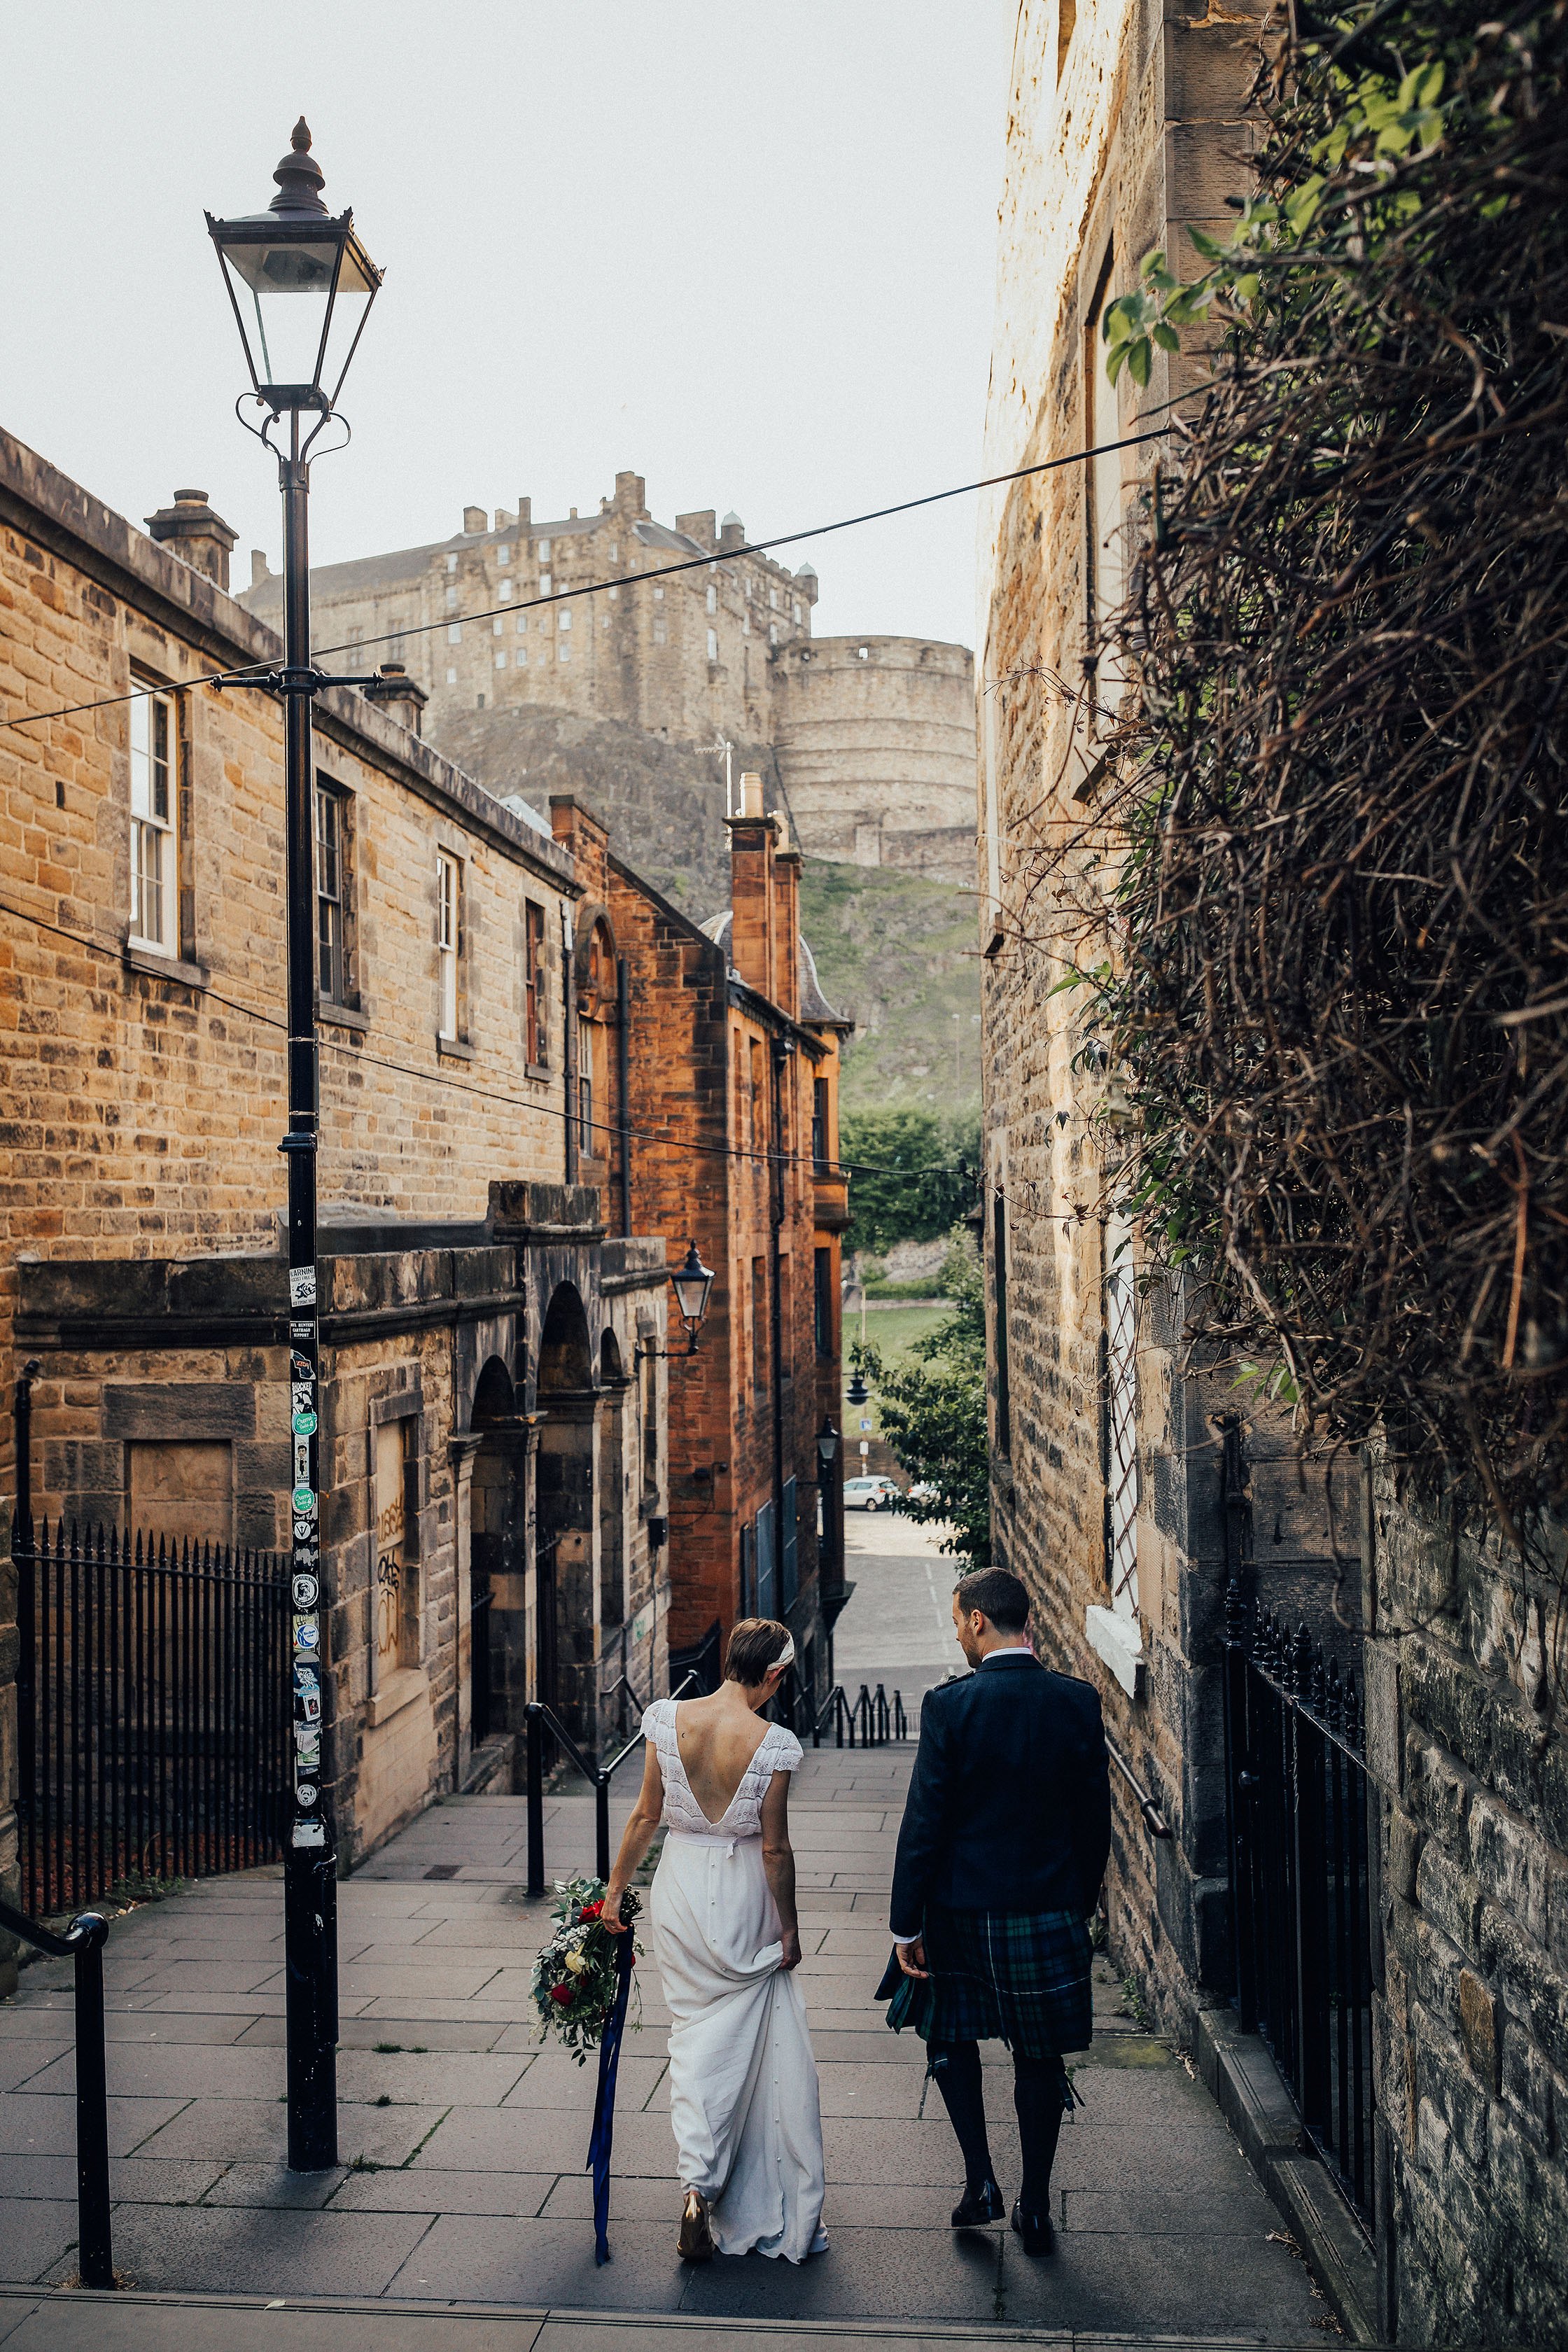 TIMBERYARD_EDINBURGH_WEDDING_PJ_PHILLIPS_PHOTOGRAPHY_190.jpg